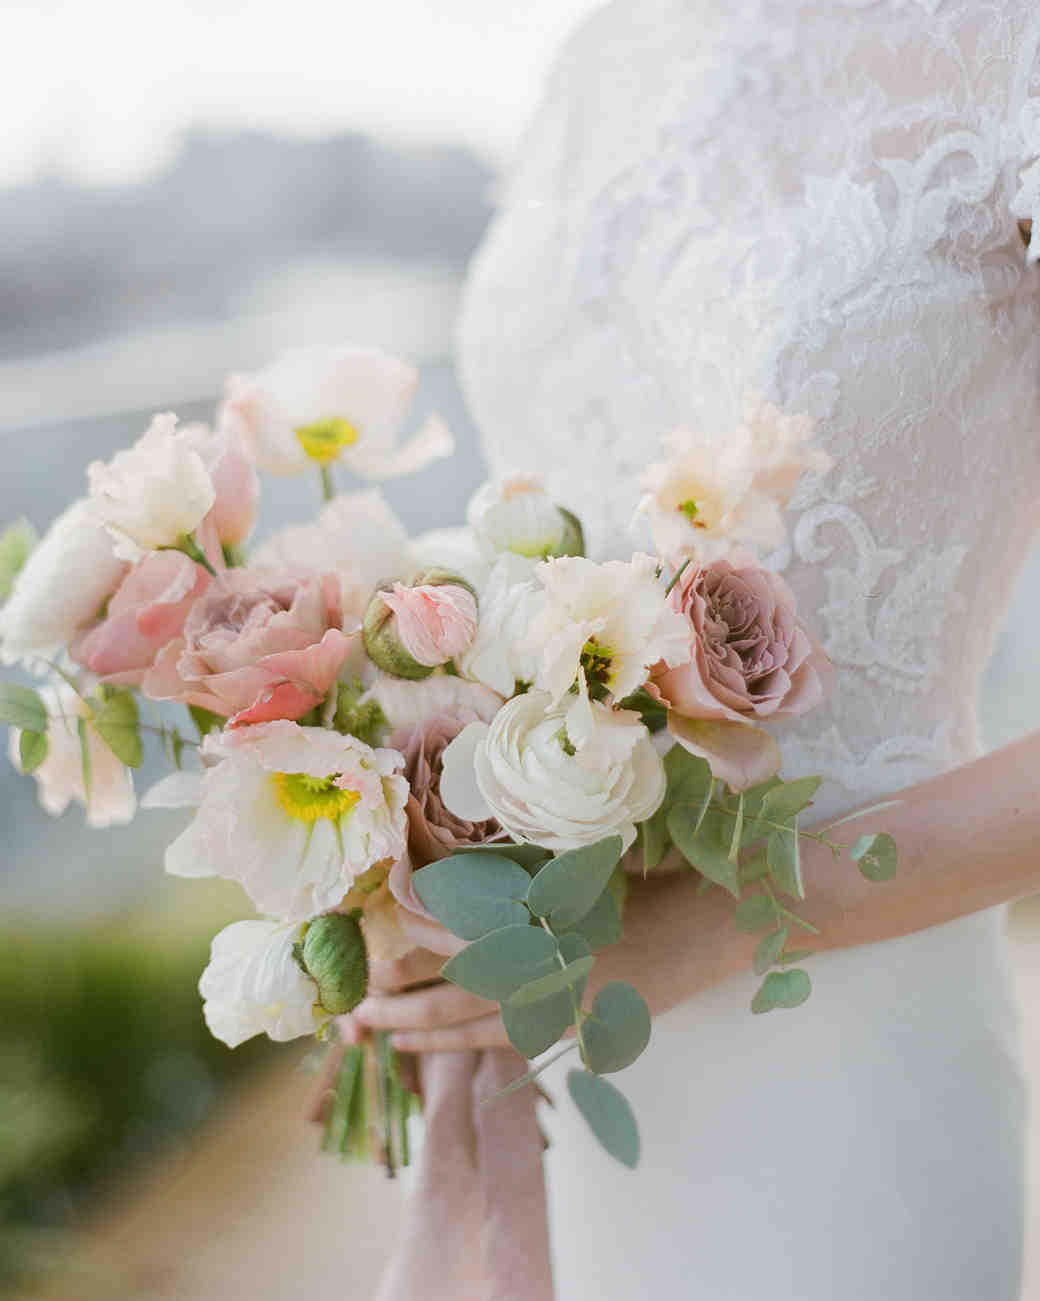 Petite Bouquet with Roses, Ranunculus, and Anemones